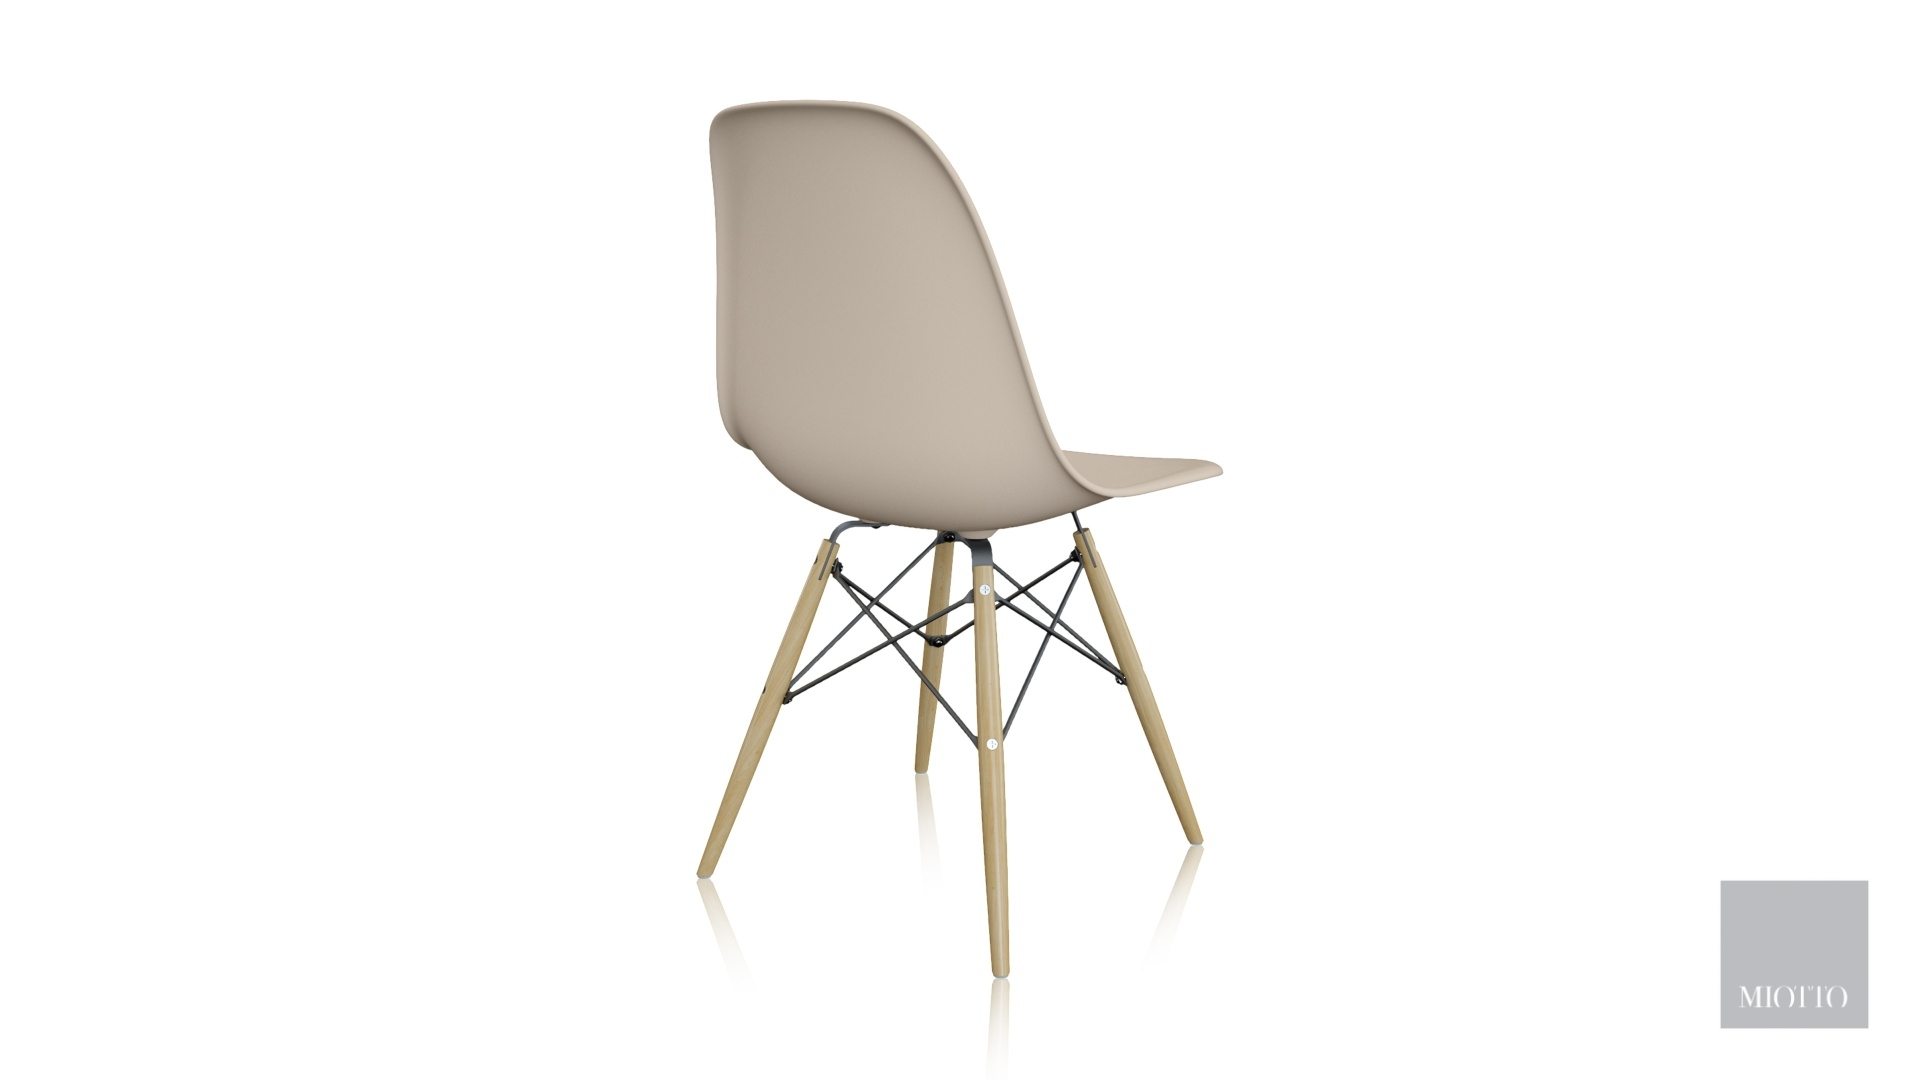 miotto_larici wood DC taupe back T miotto dining chair furniture